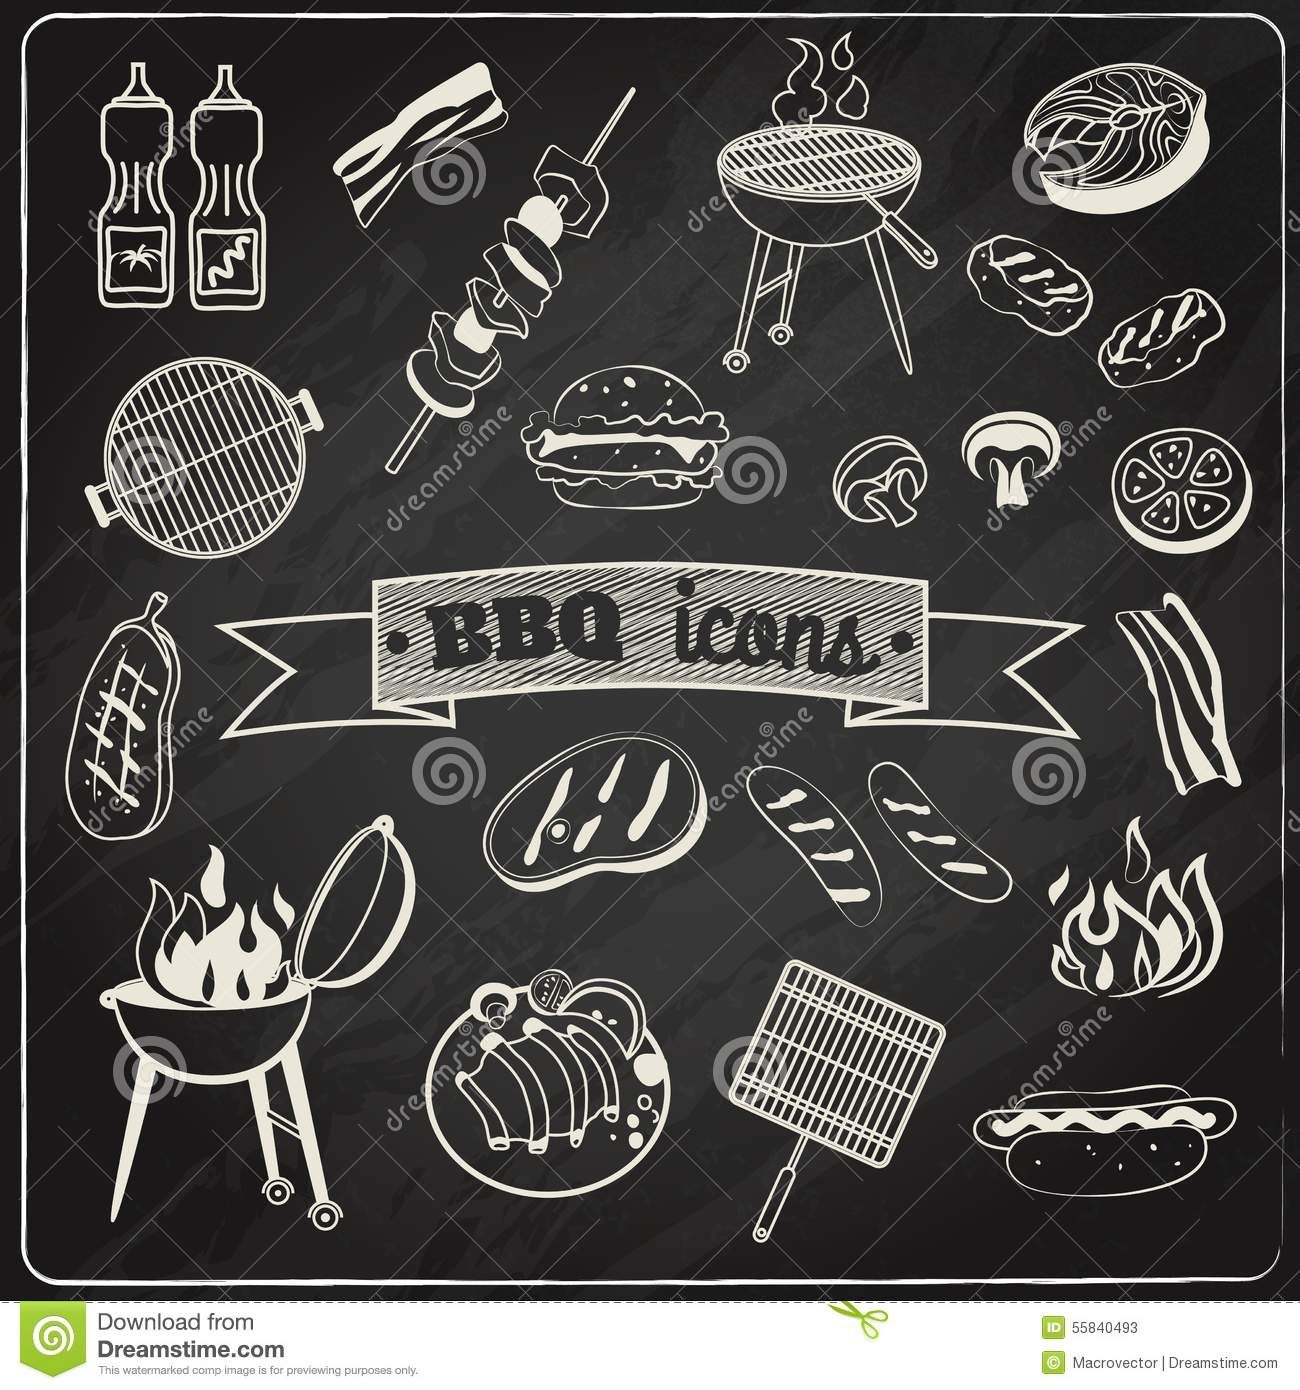 Bbq clipart chalkboard. Barbecue set download from